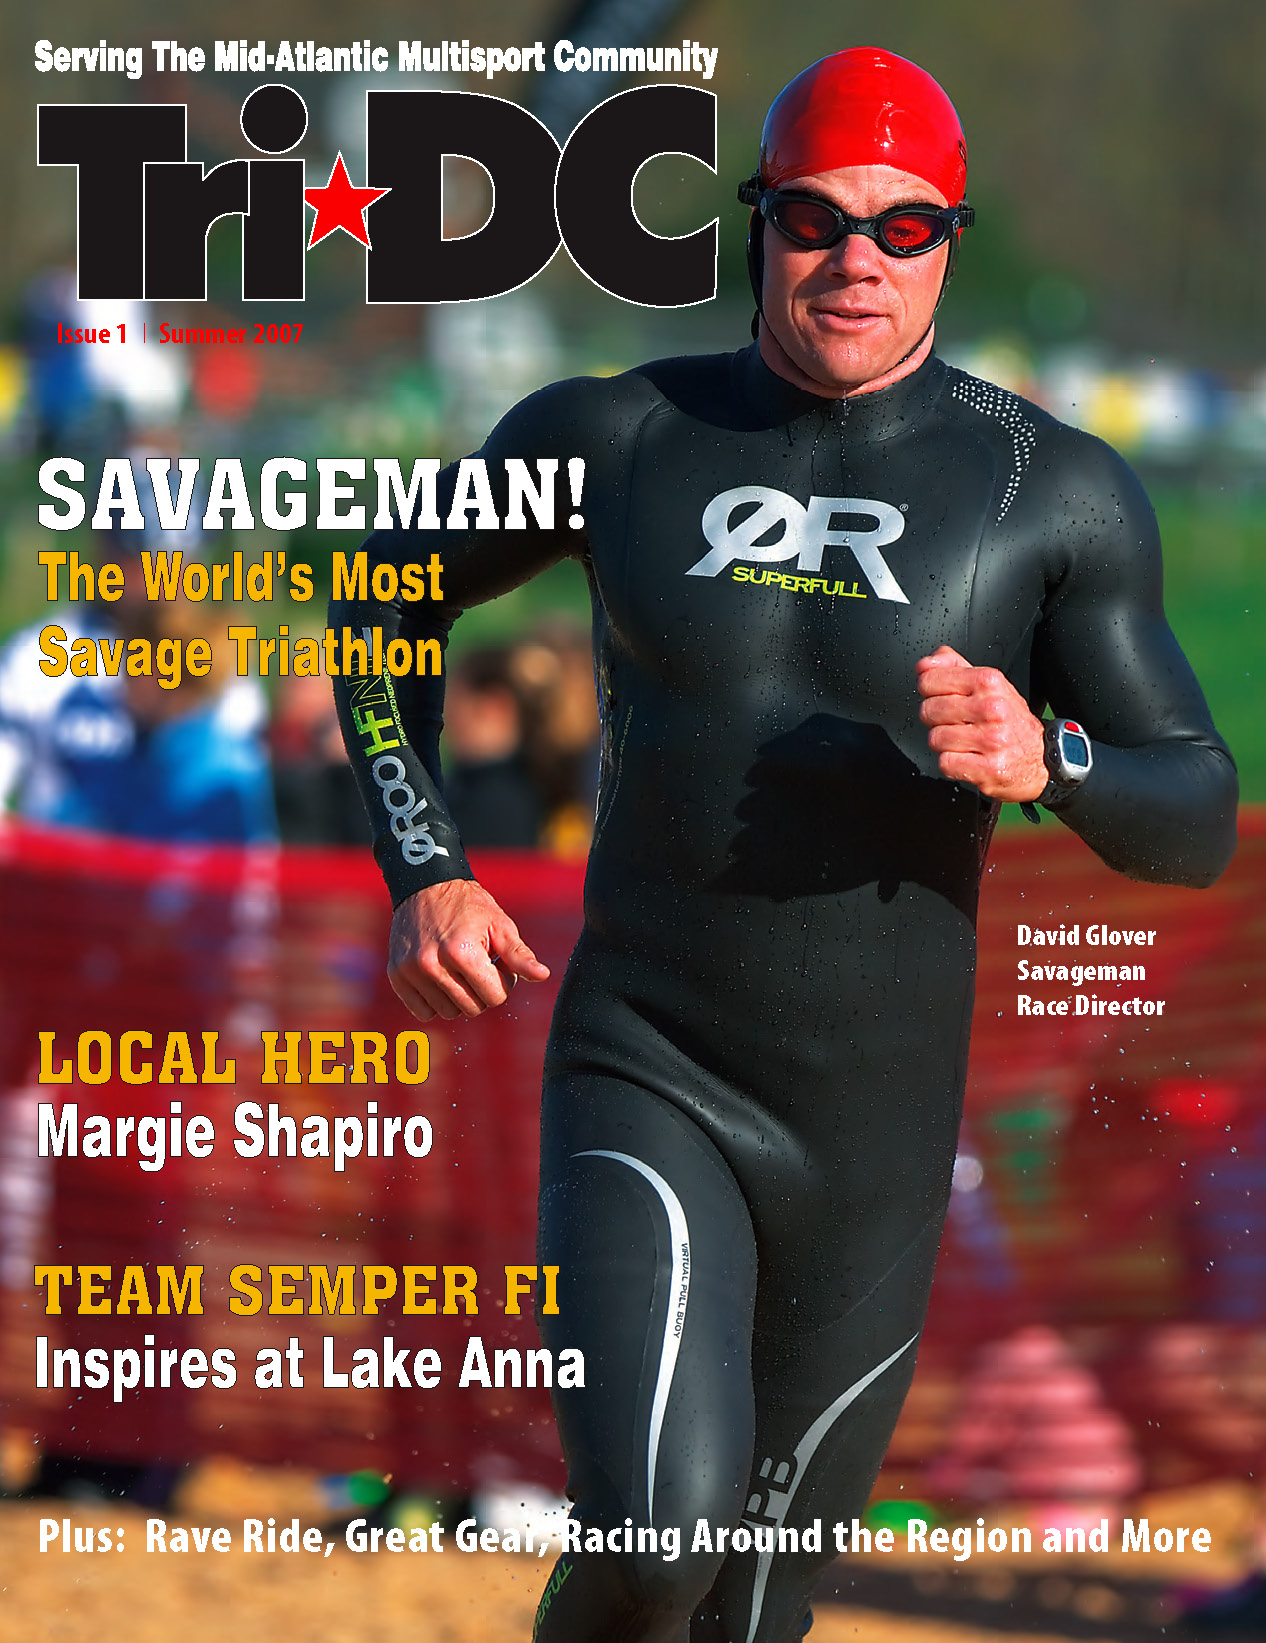 tri DC magazine issue 1 cover